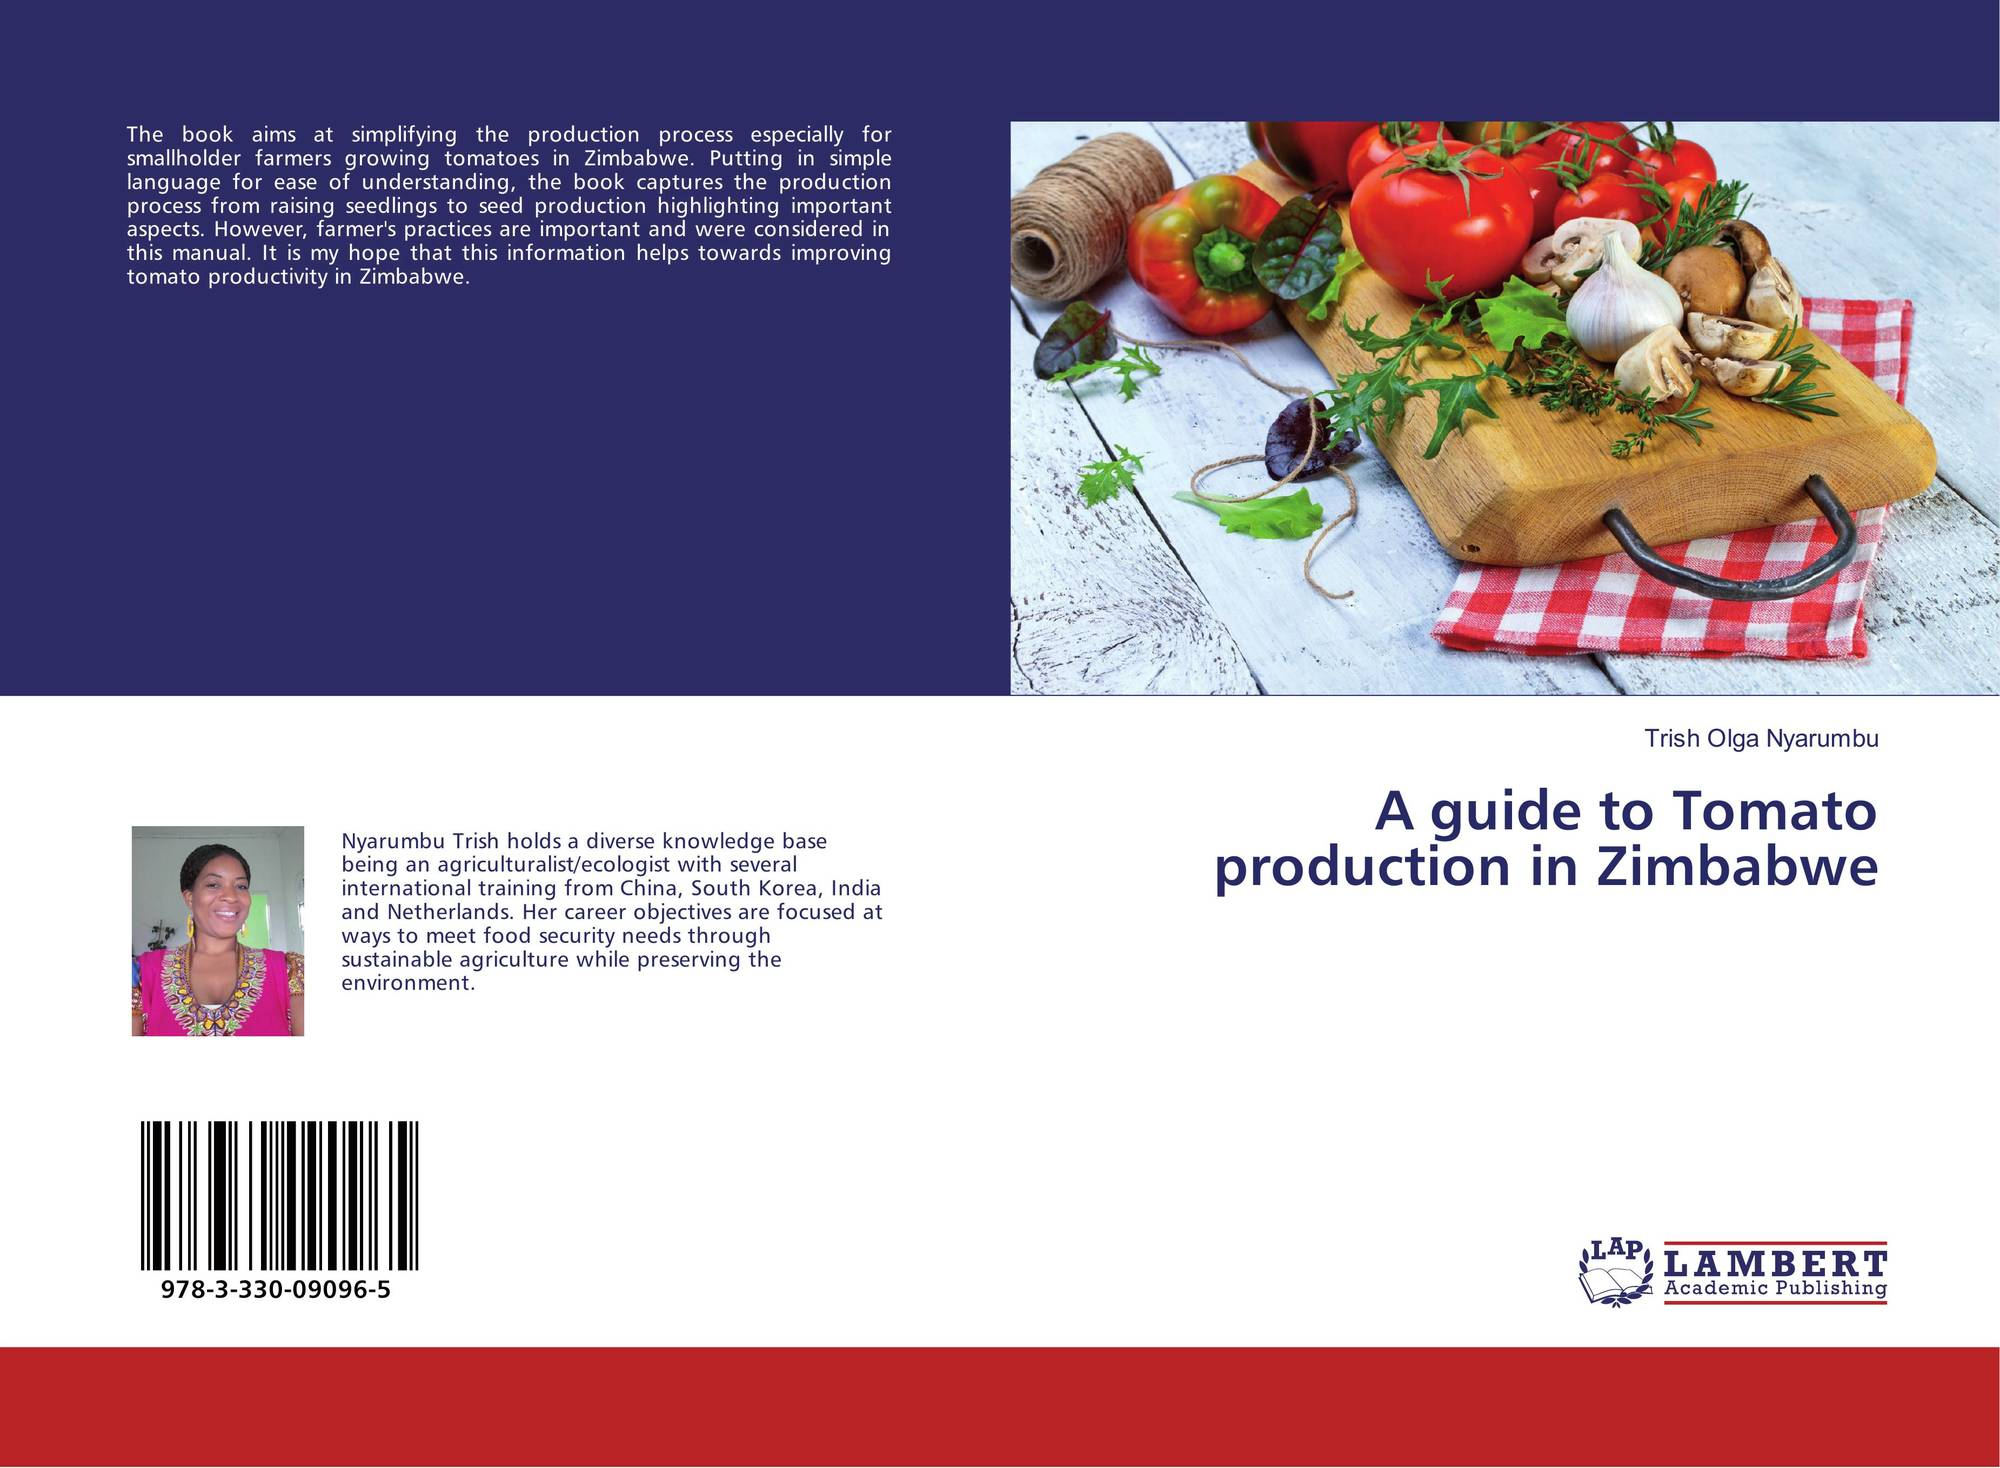 A guide to Tomato production in Zimbabwe, 978-3-330-09096-5